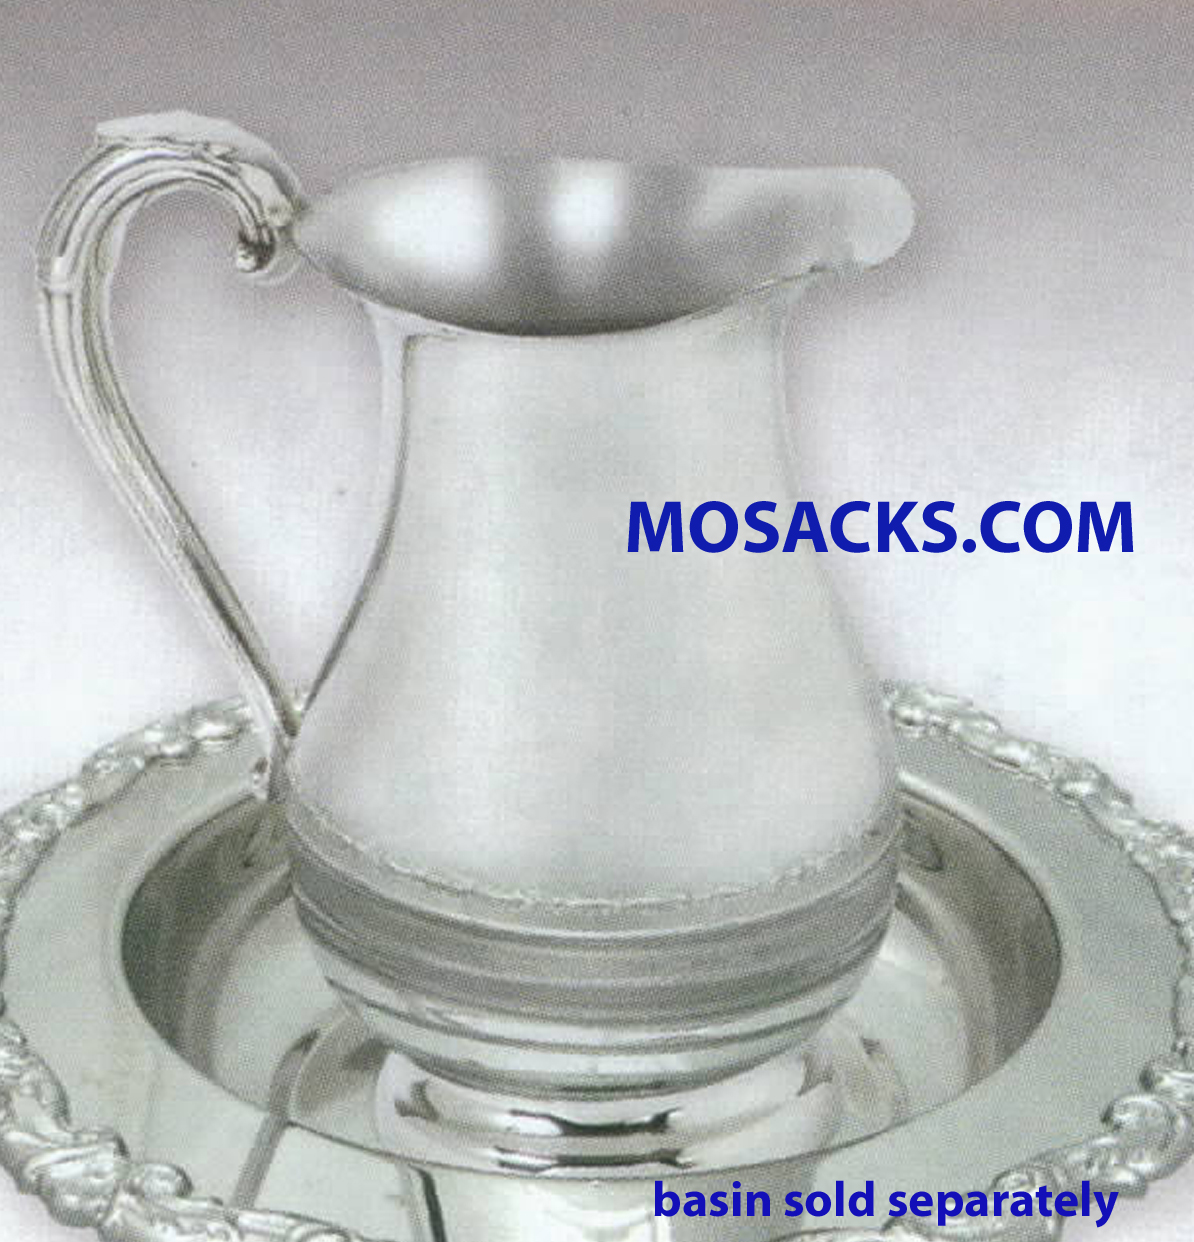 Ewer & Basins, Lavabo Bowl Sets